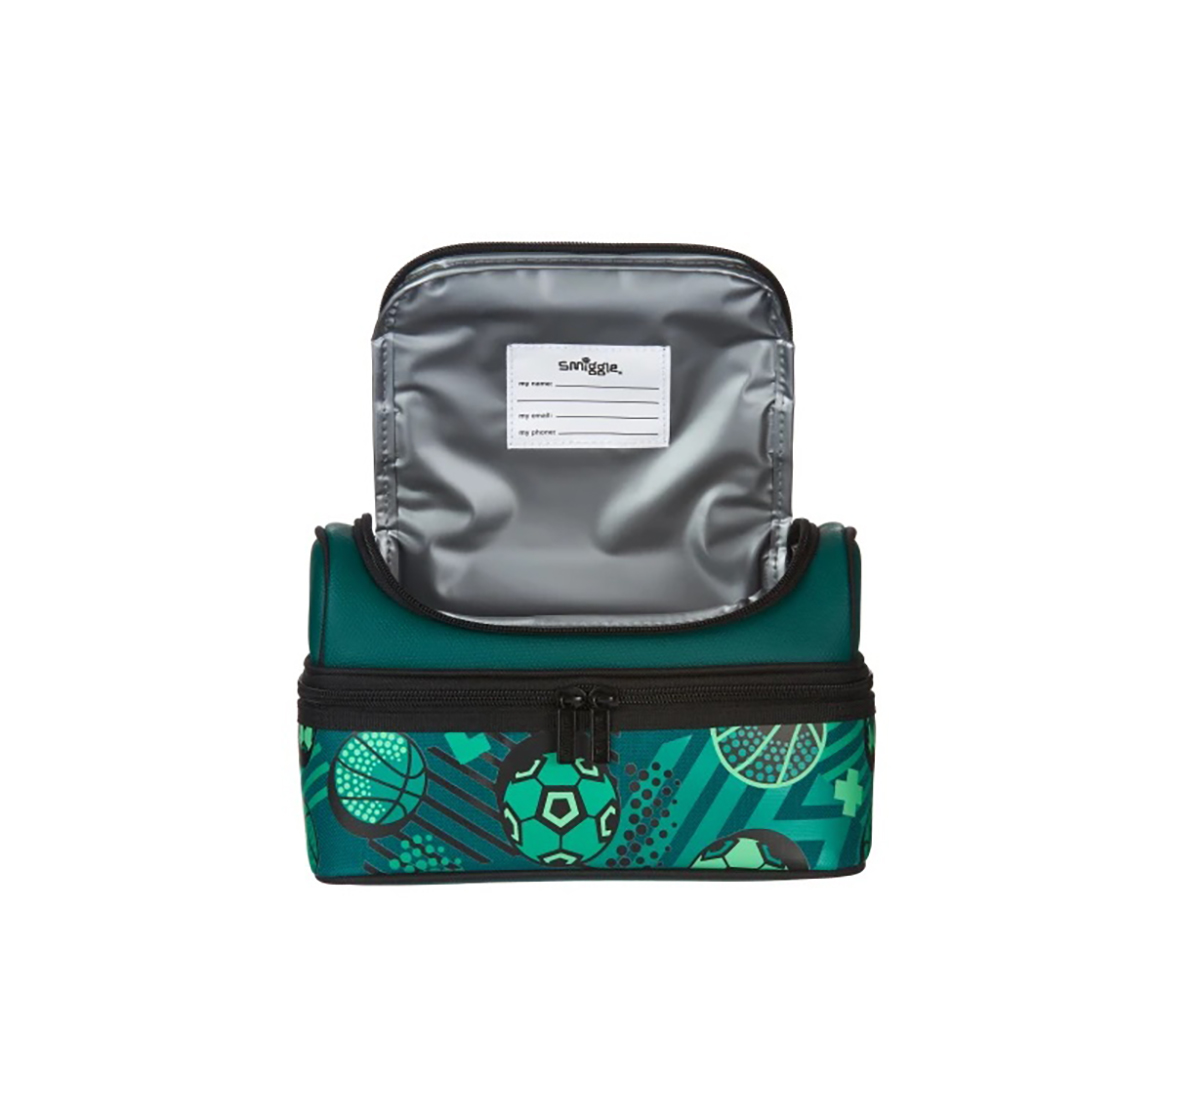 Smiggle   Smiggle Flow Double Decker Lunchbox - Football Print Bags for Kids age 3Y+ (Green)